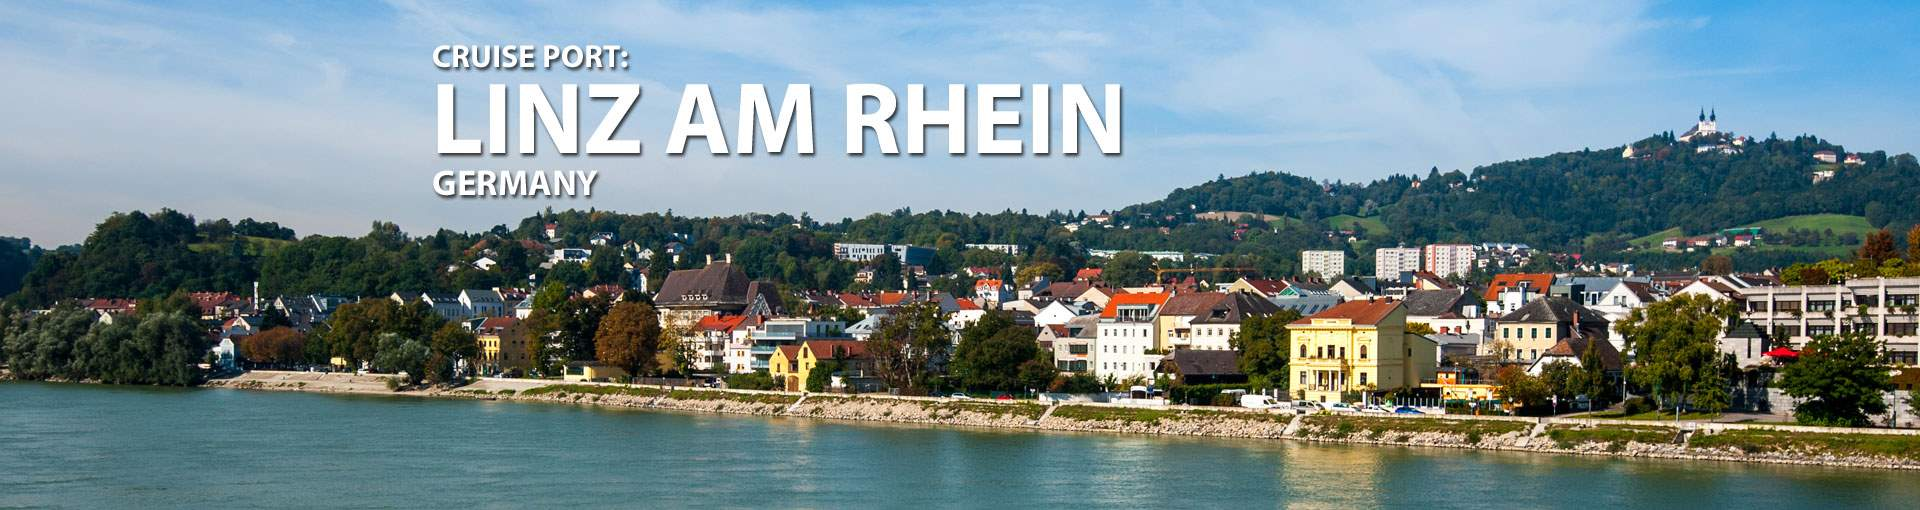 Cruises to Linz Am Rhein, Germany